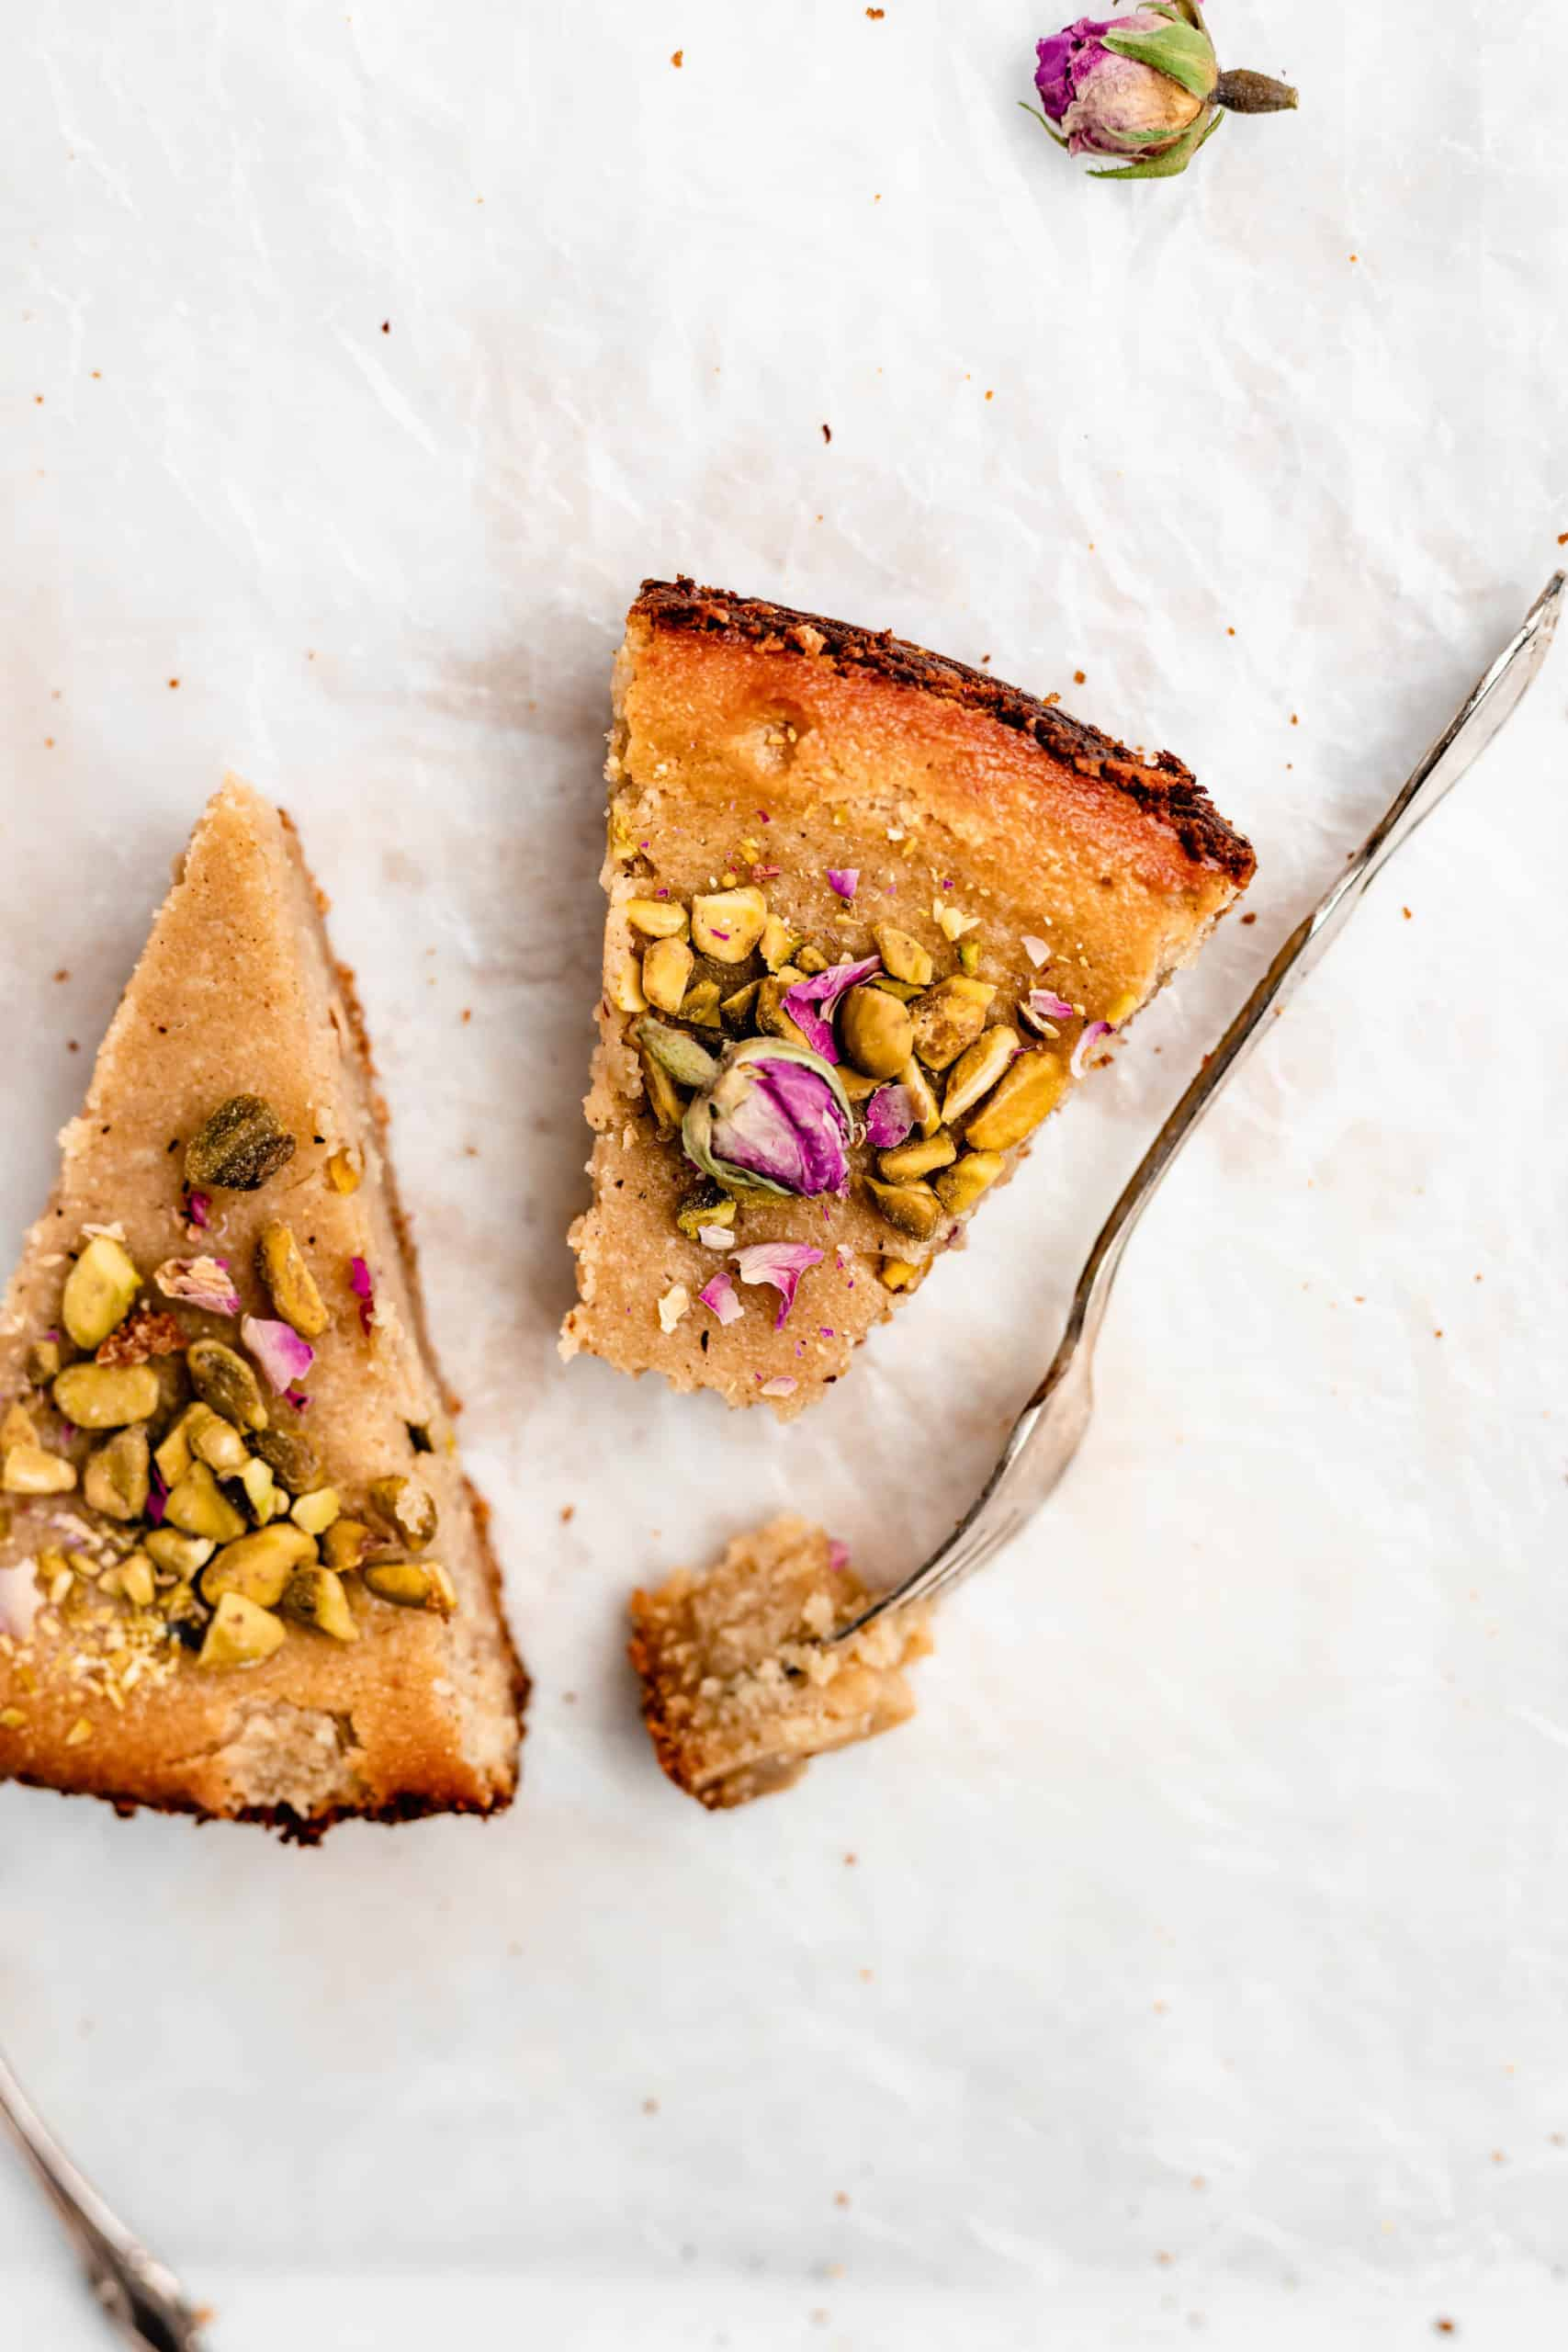 slices of gluten free persian love cake